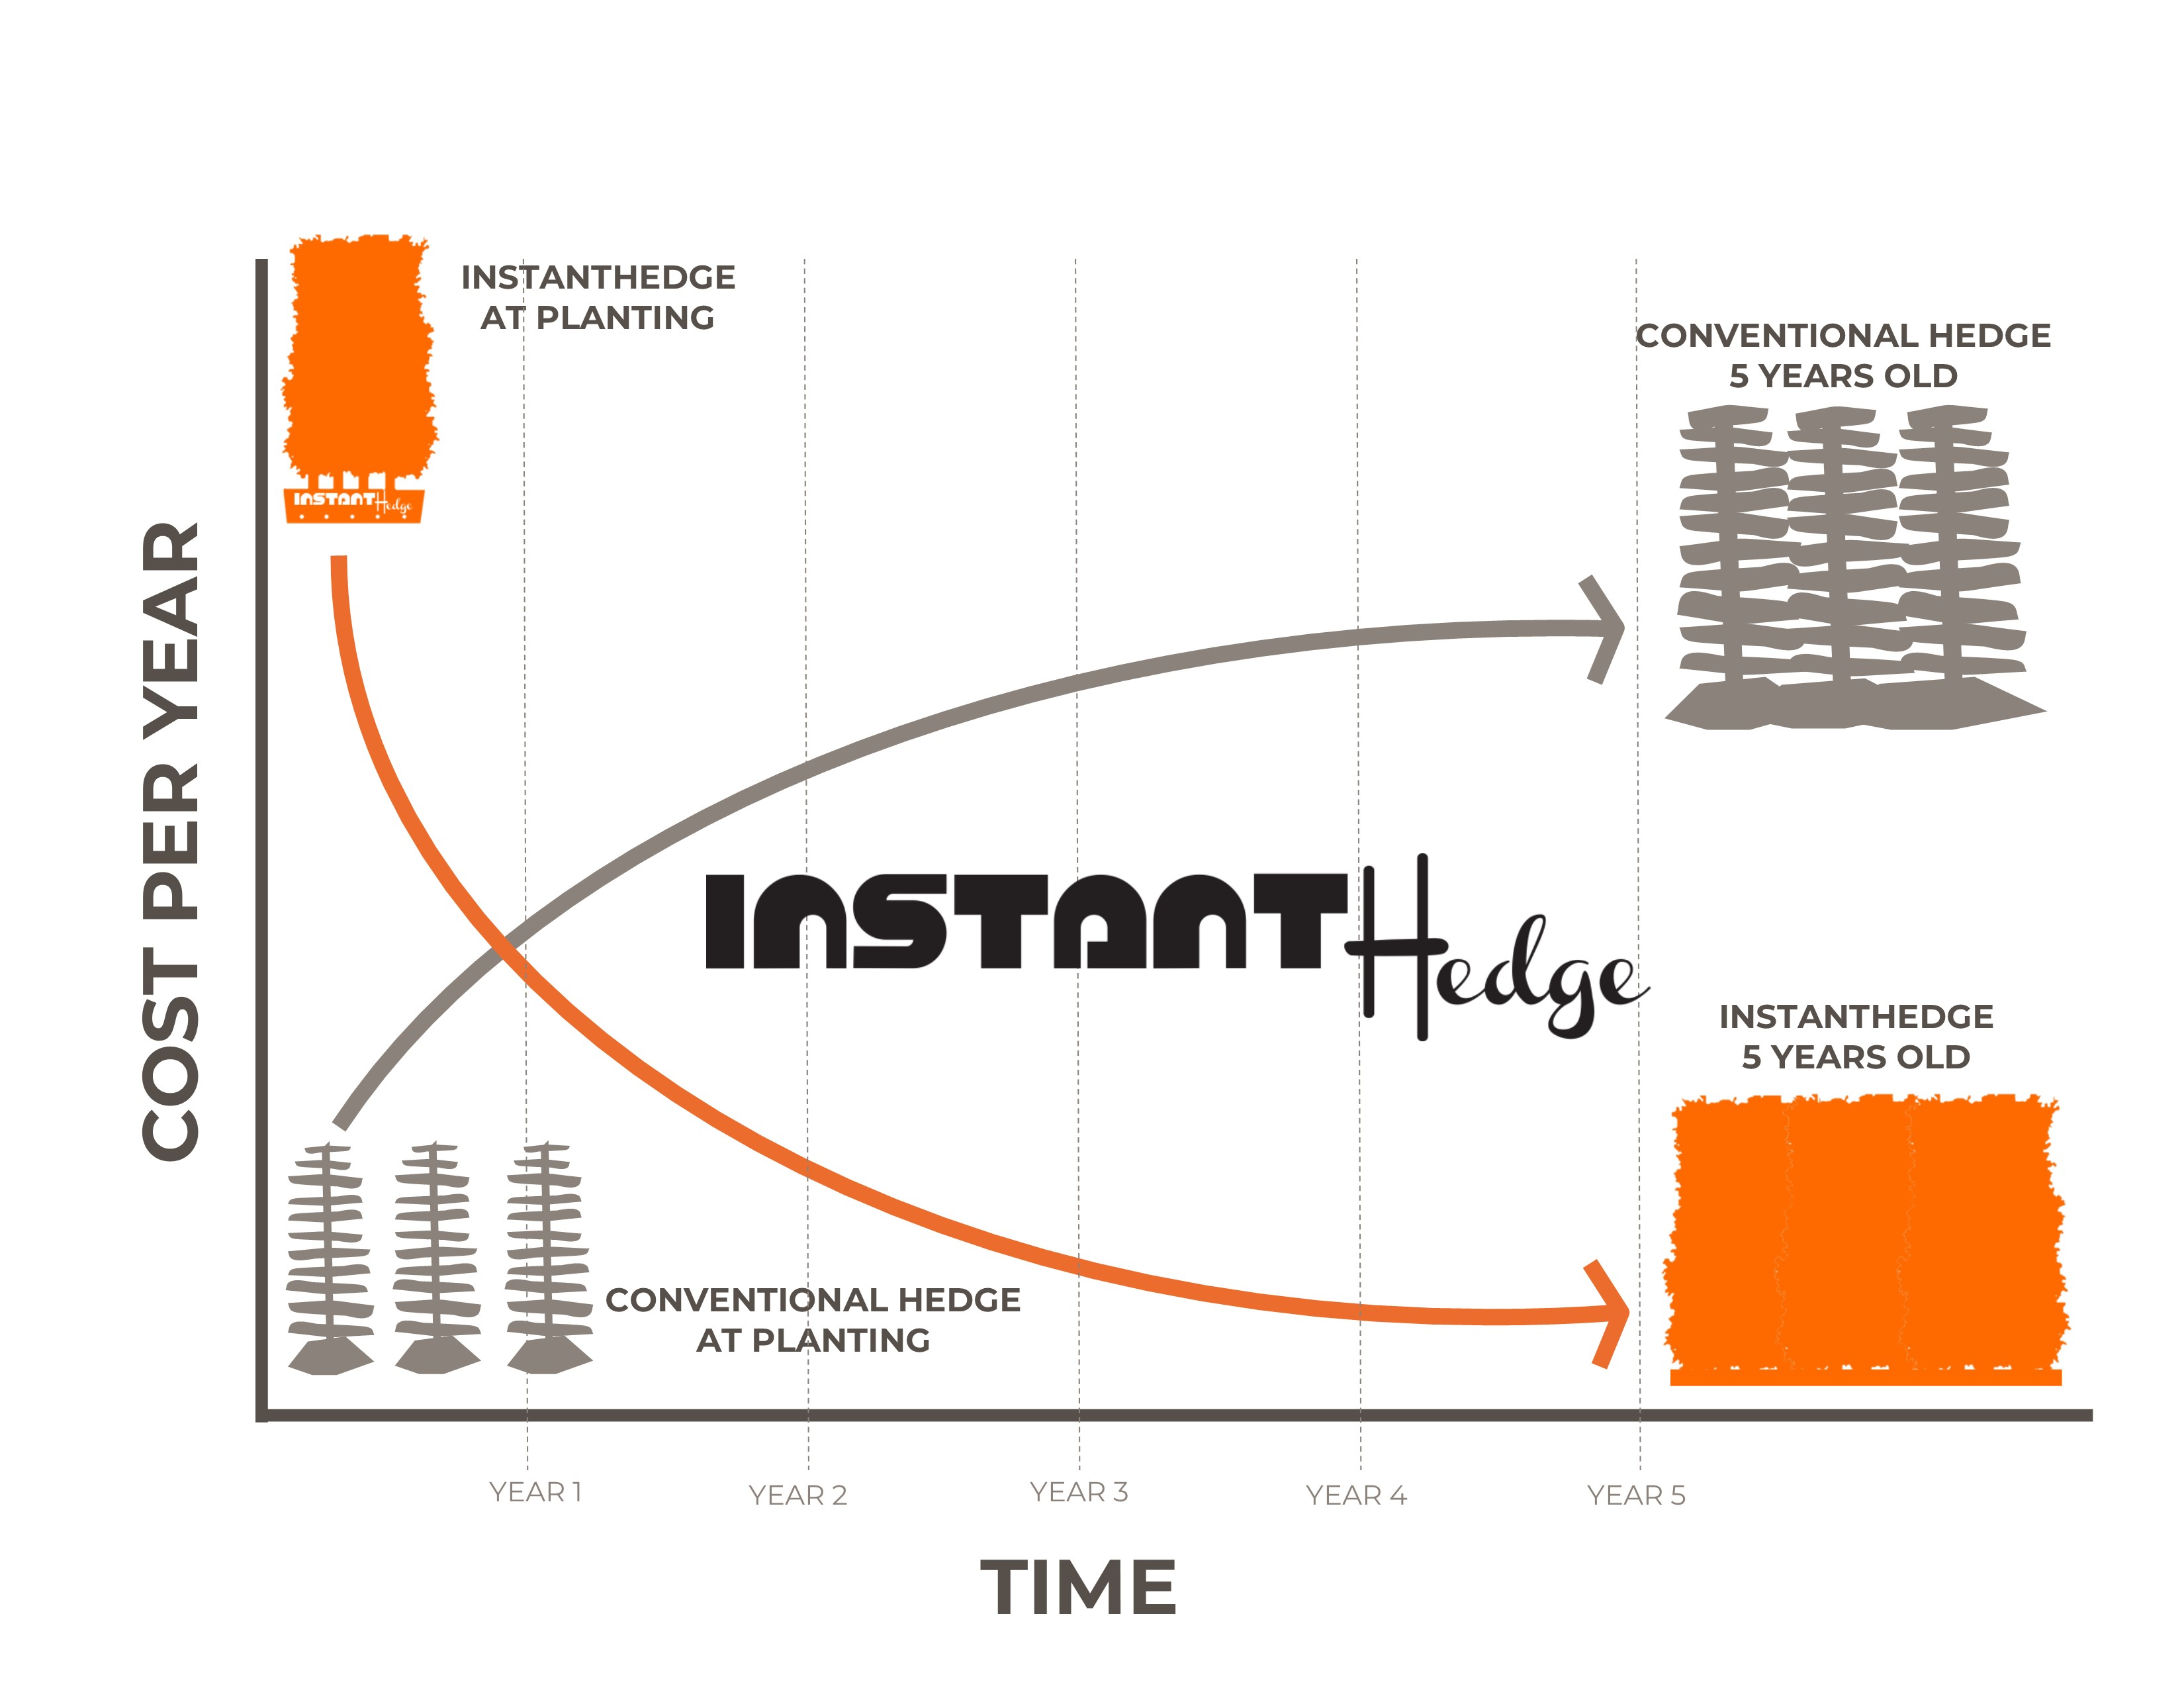 instanthedge-vs-conventional-cost-comparison-white-background.jpg